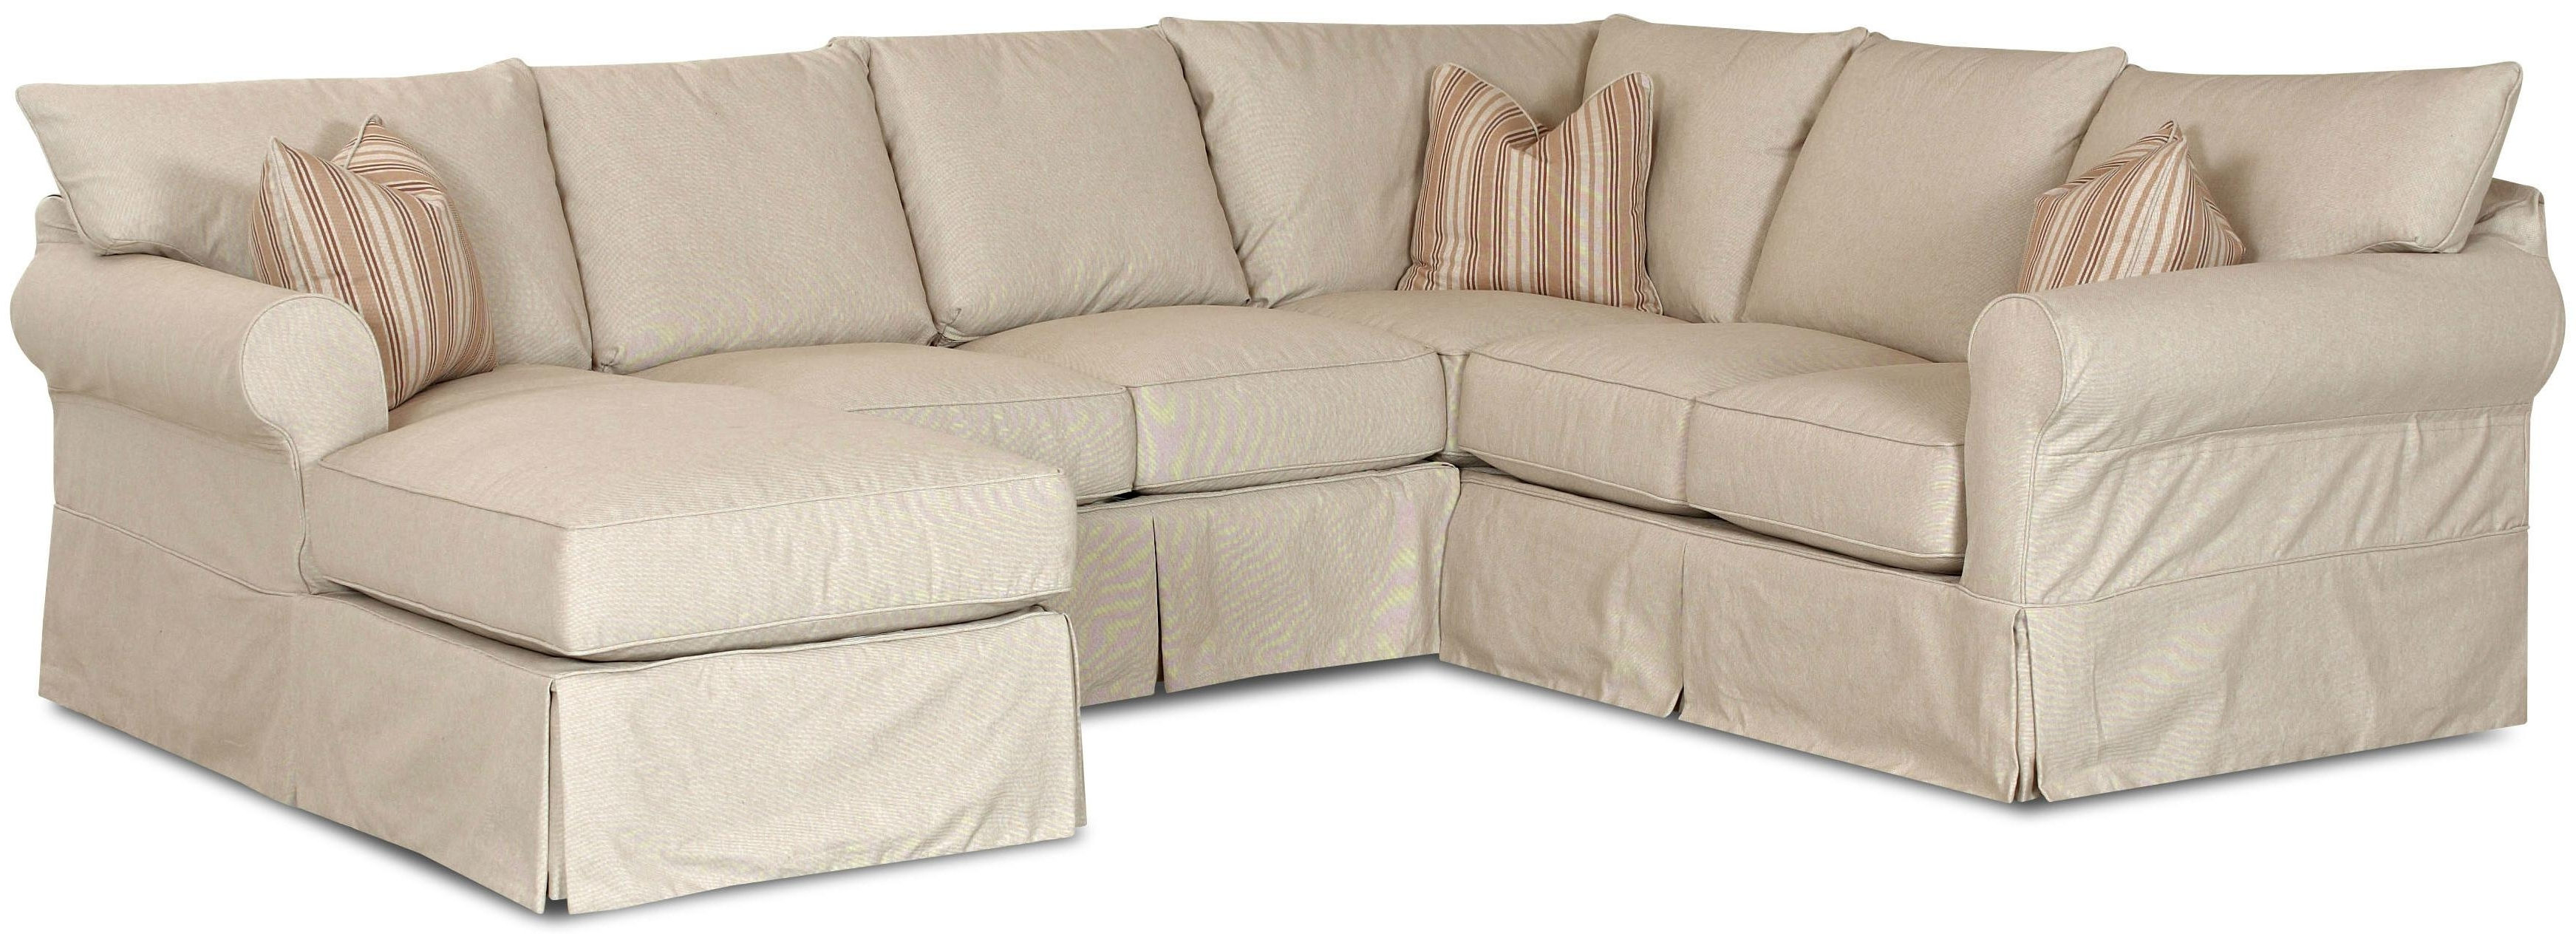 Newest Klaussner Jenny Slip Cover Sectional Sofa With Right Chaise – Ahfa Intended For Sectional Sofas With Covers (View 6 of 15)